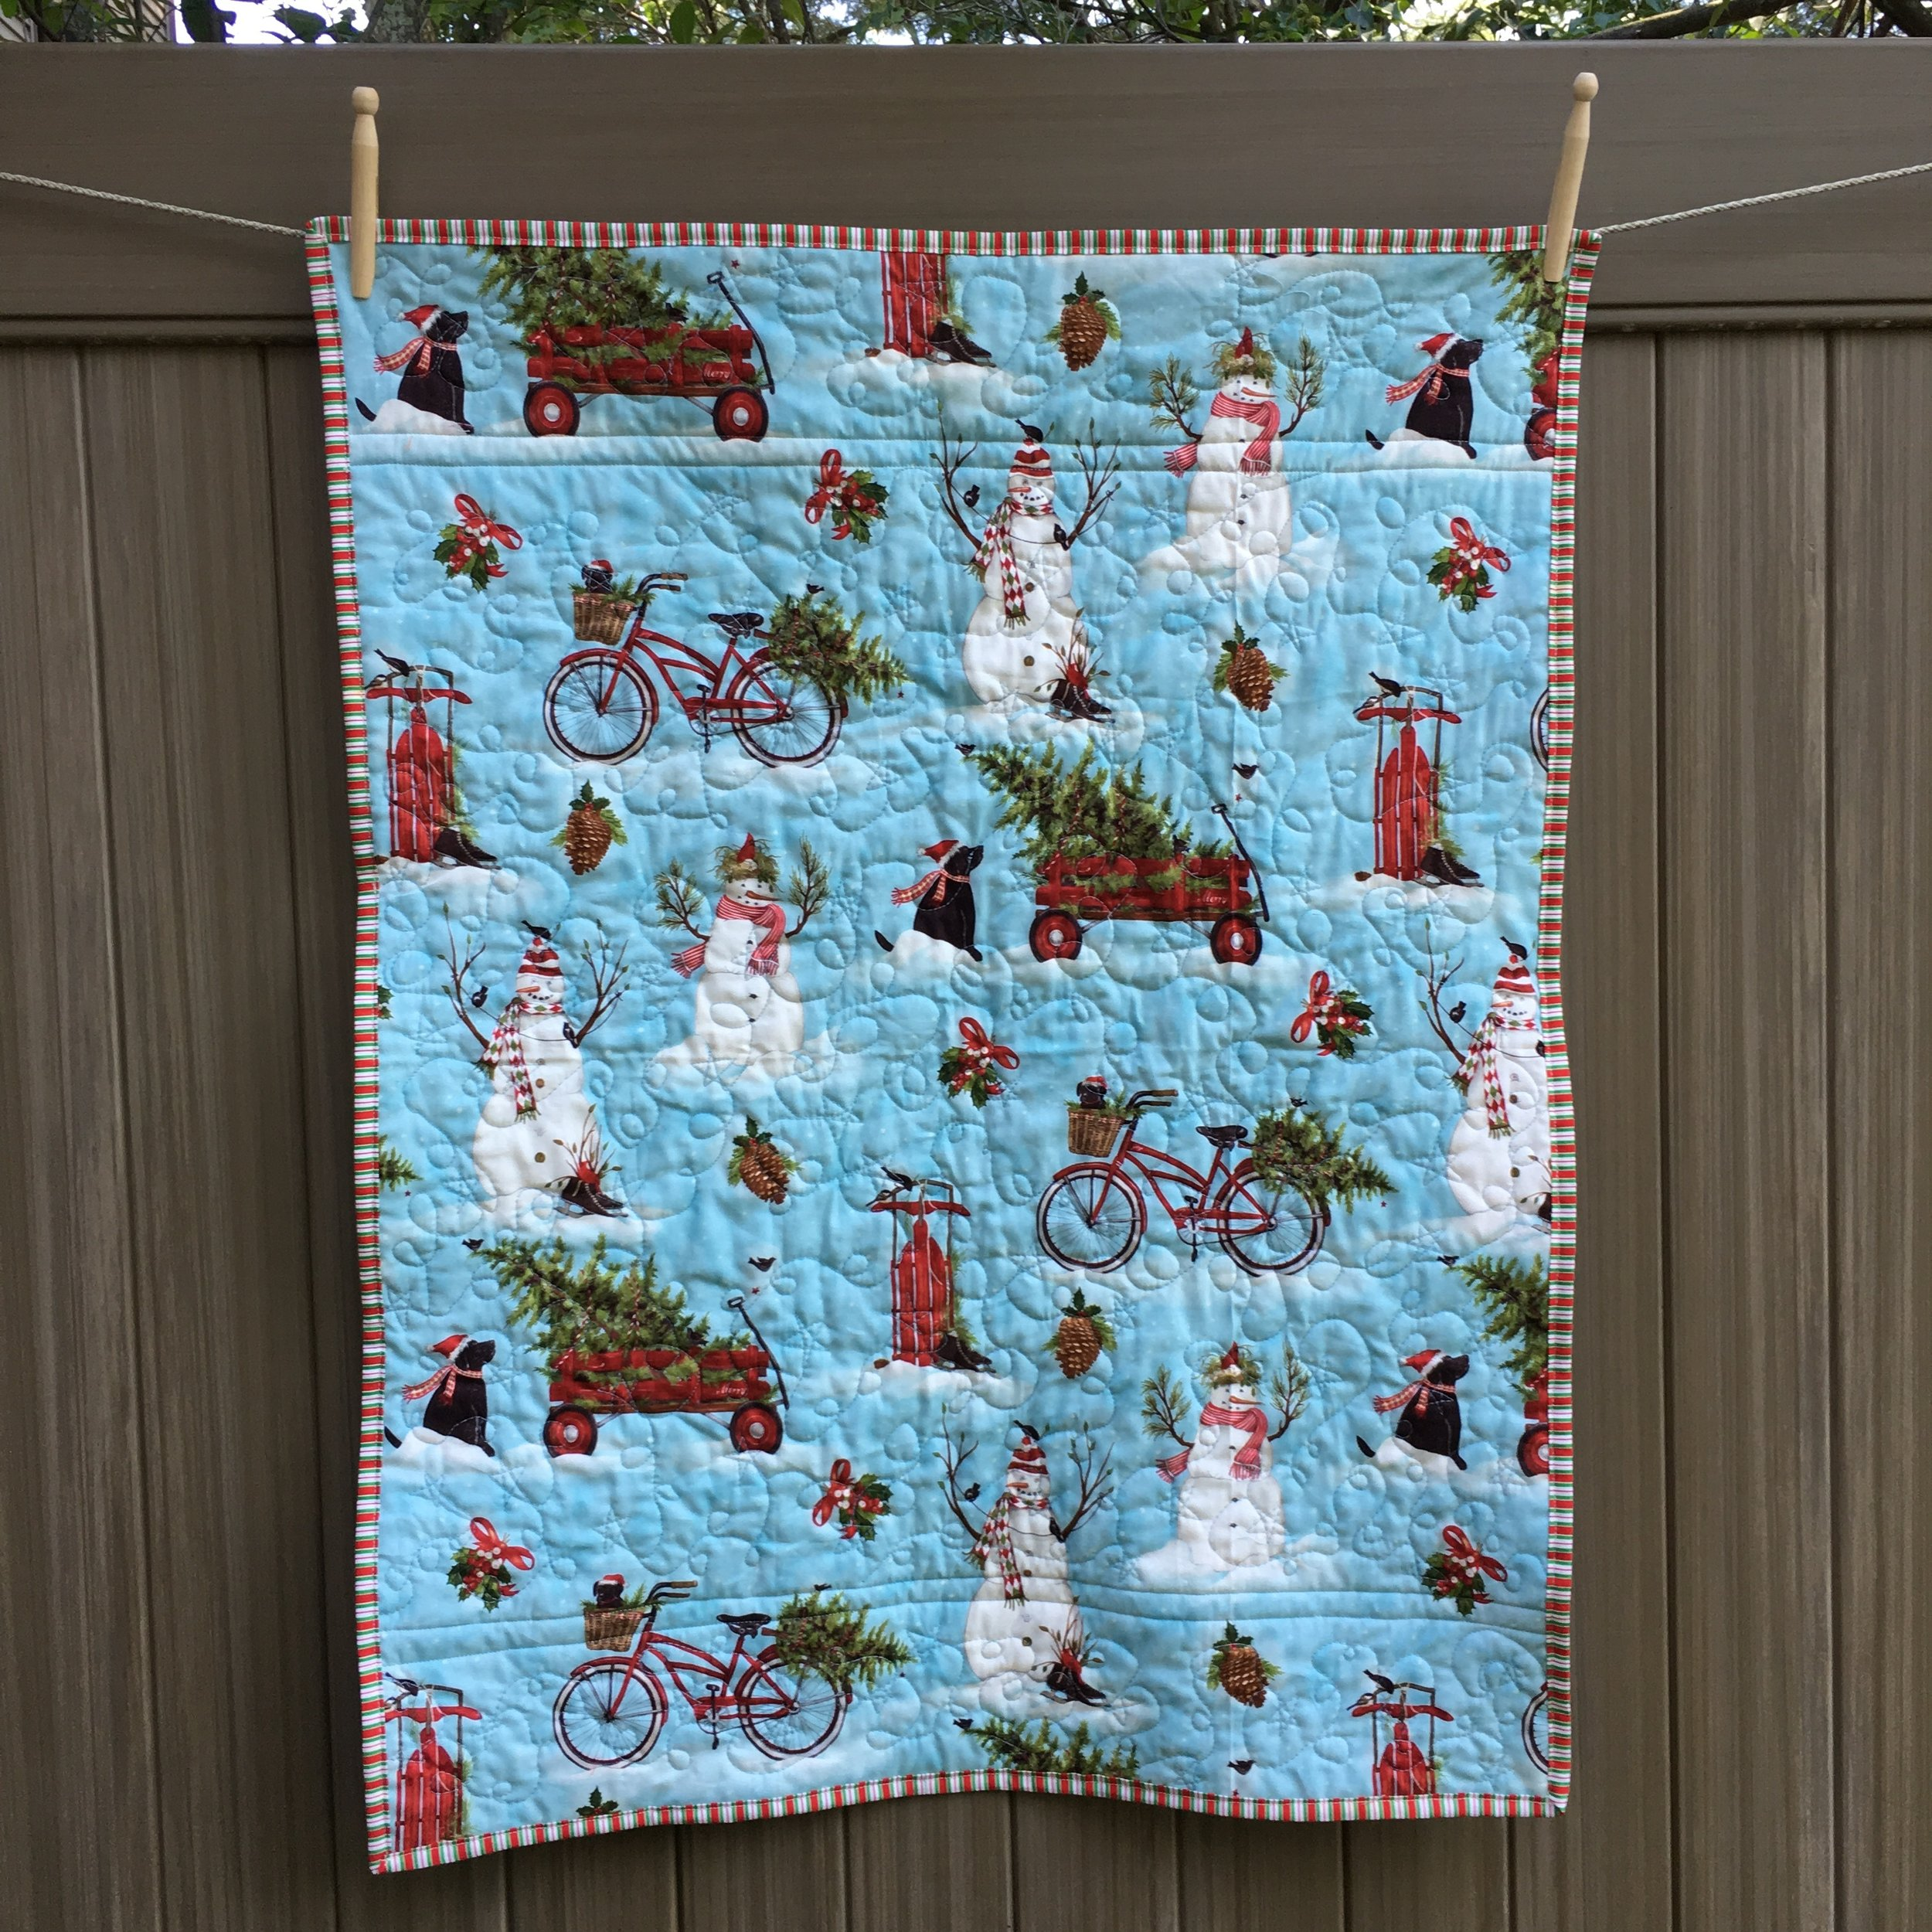 Reverse of quilt at top